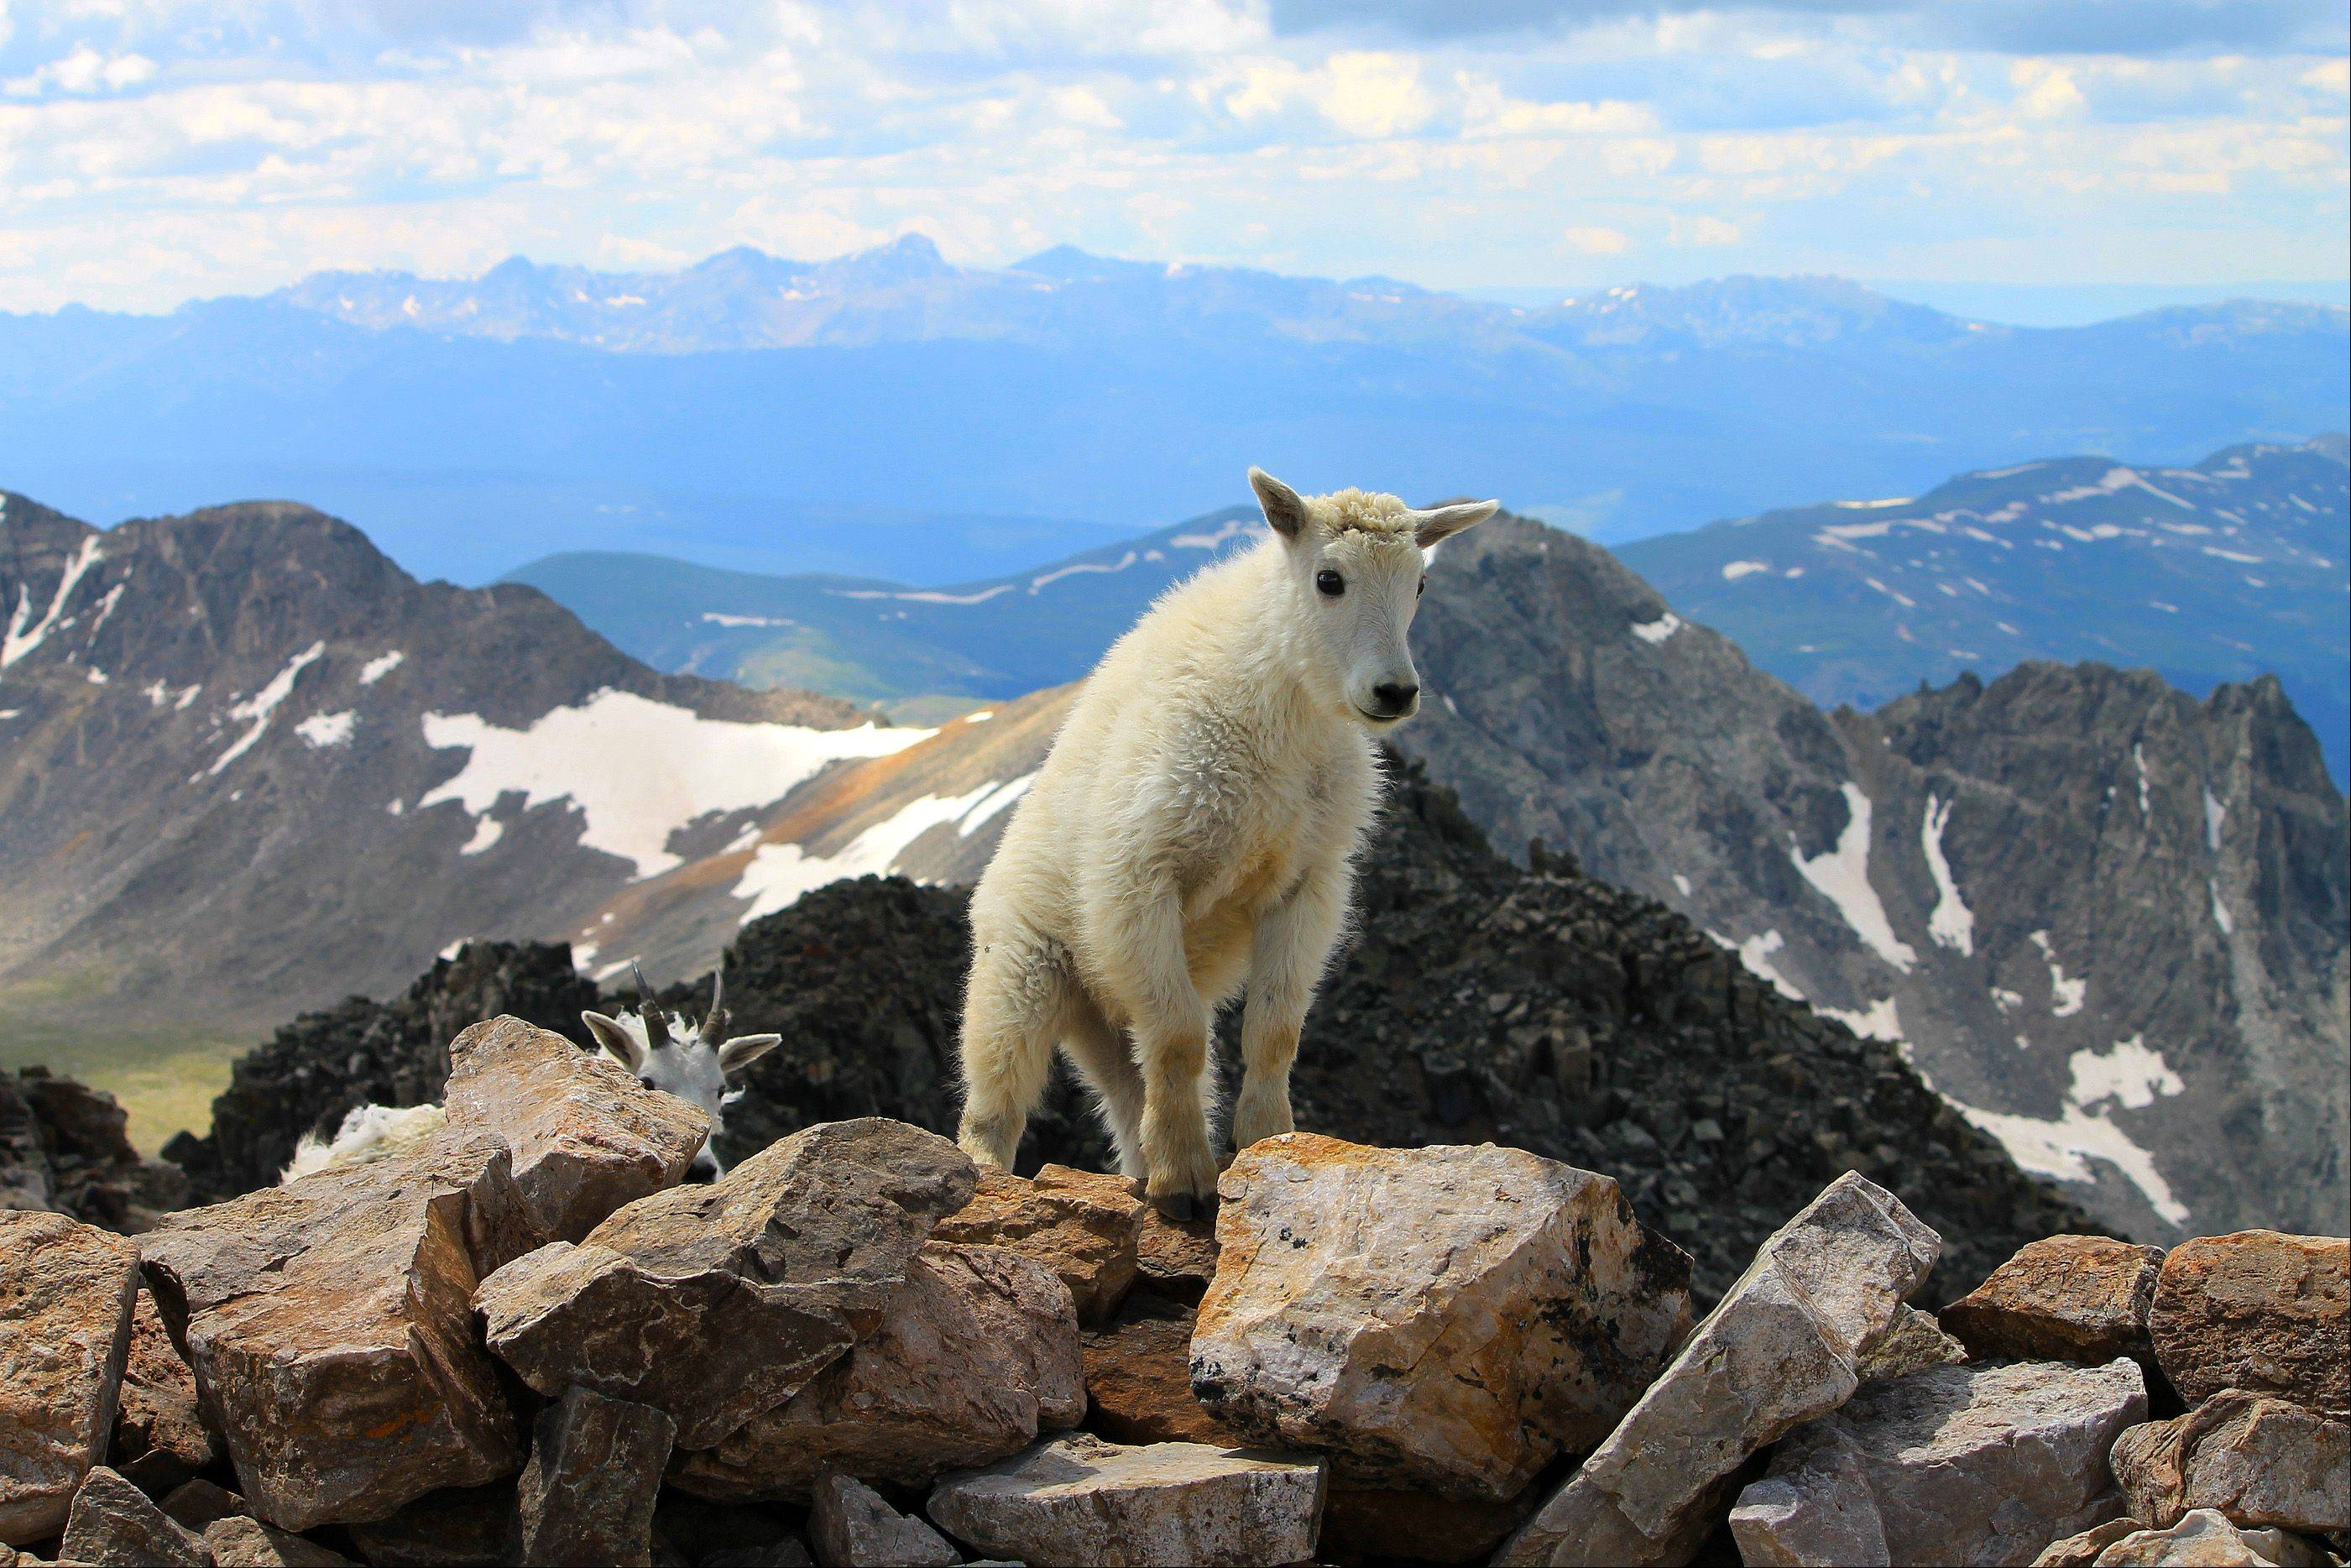 Seth Gasick of Wheaton captured his winning image in the Rockies near Breckenridge, Colo.